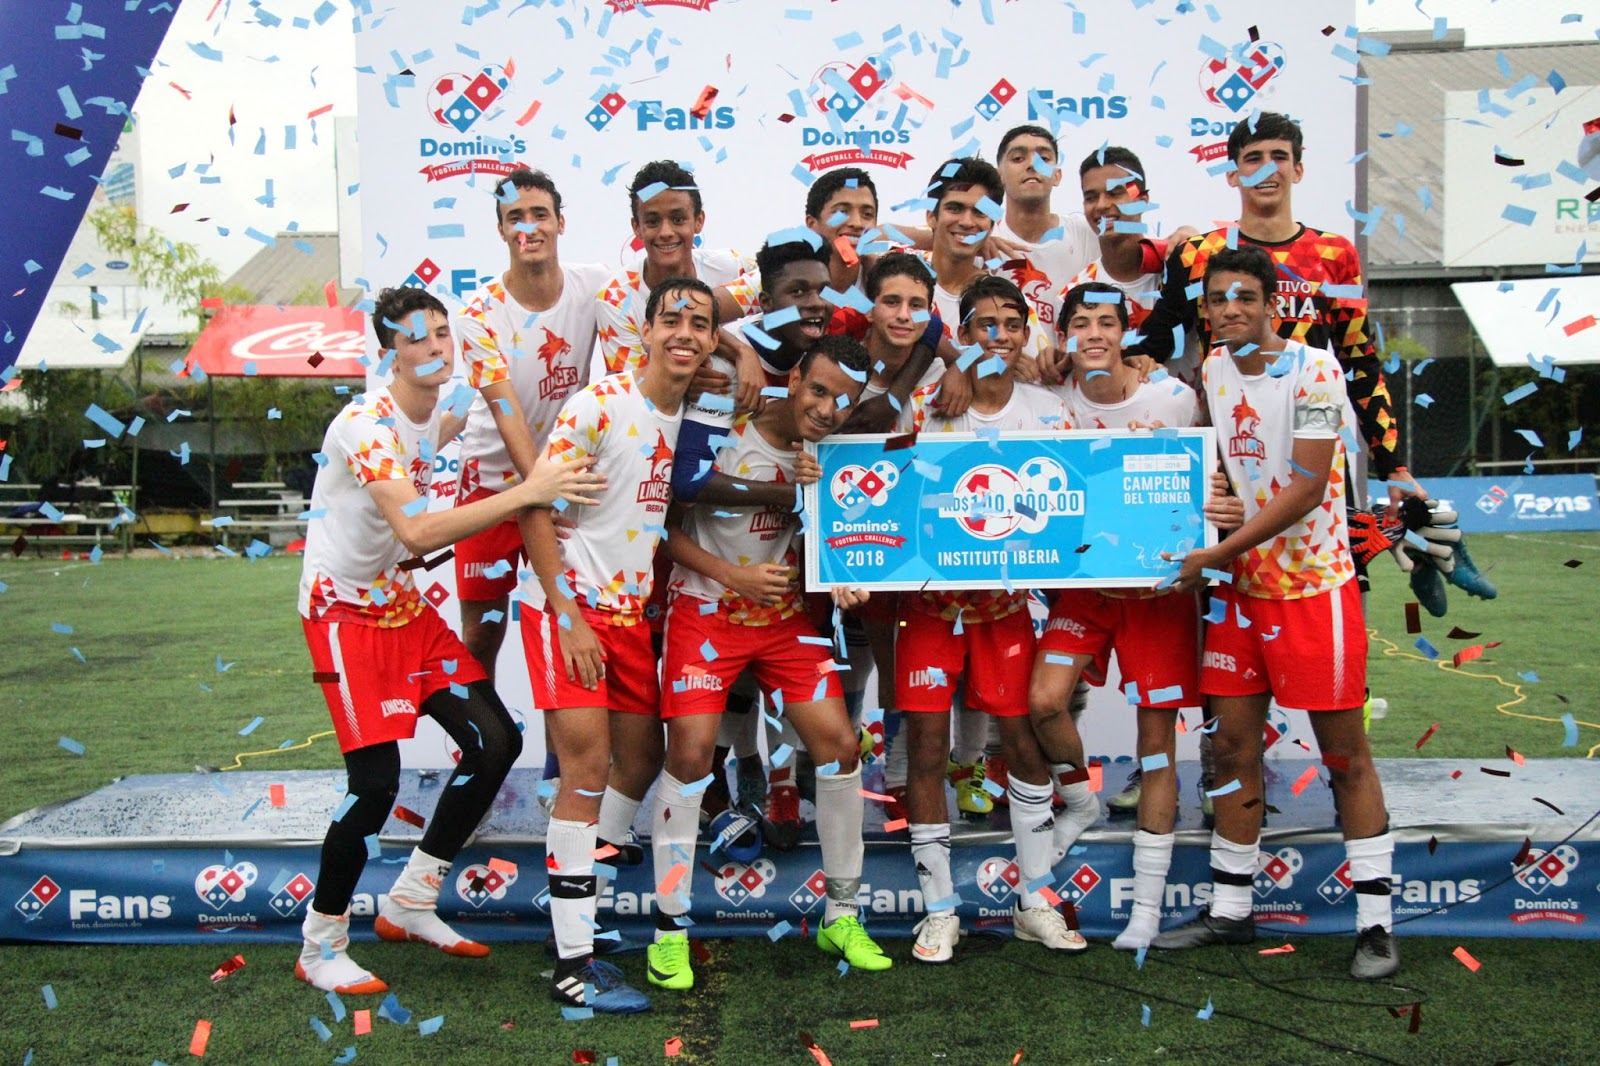 Instituto Iberia campeón del Domino´s Football Challenge